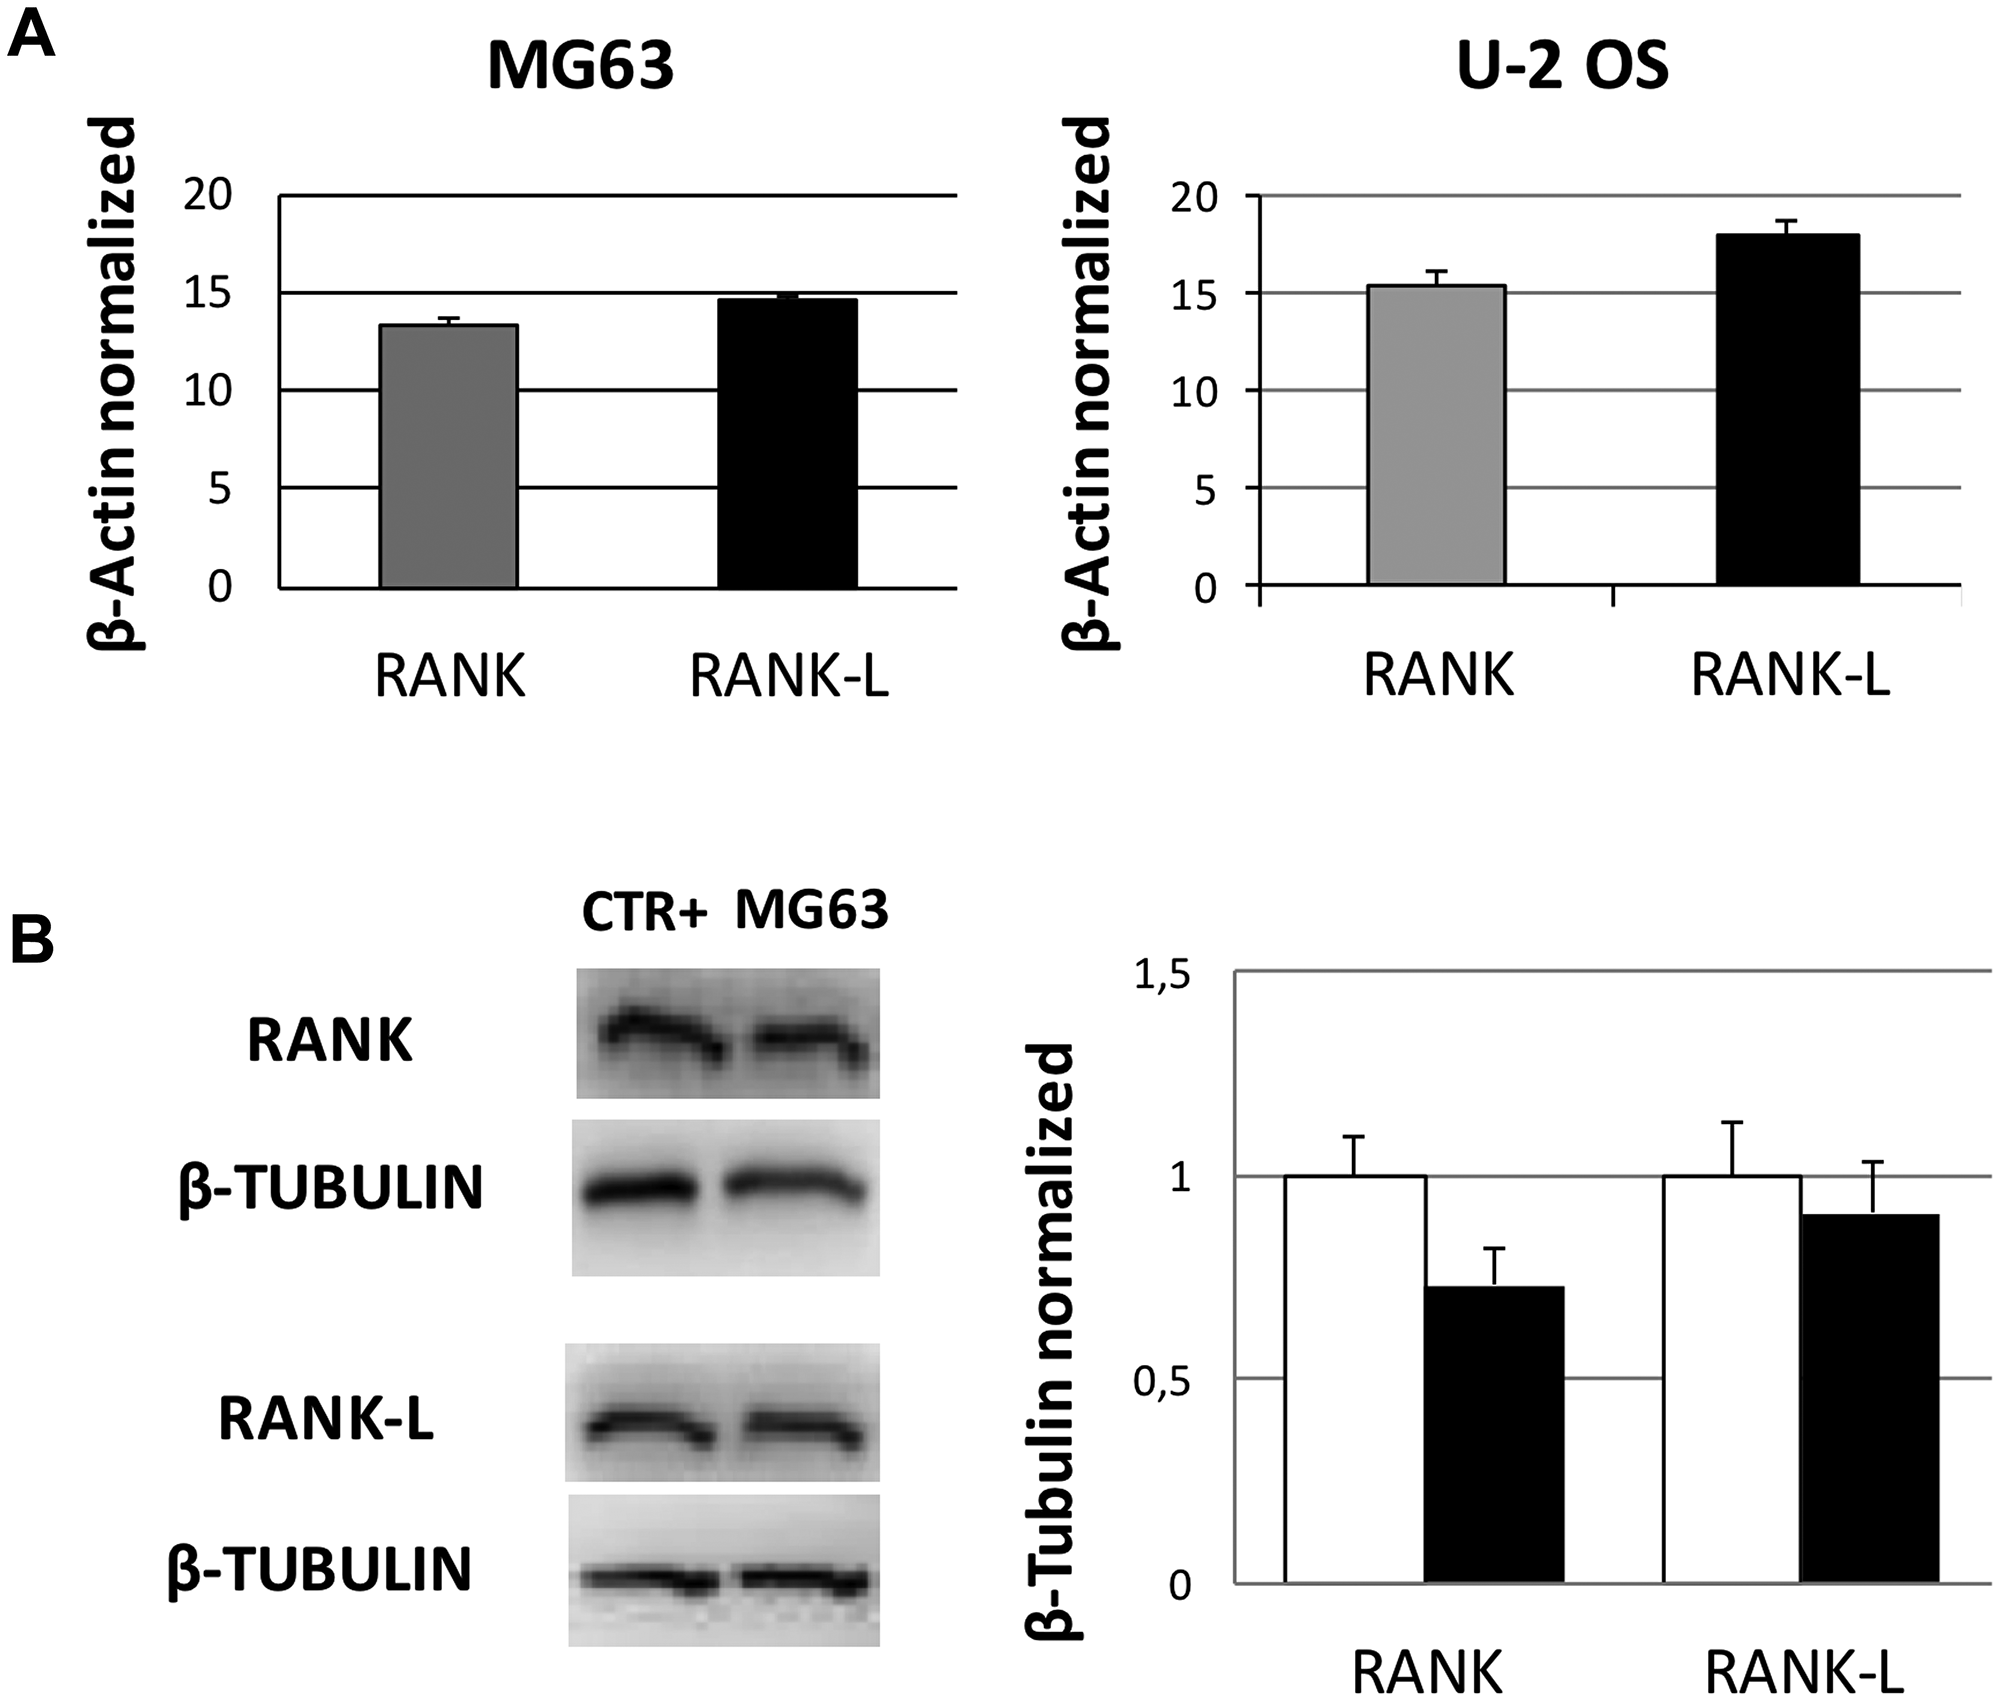 RANK and RANK-L mRNA and protein expression levels in OS cell lines.